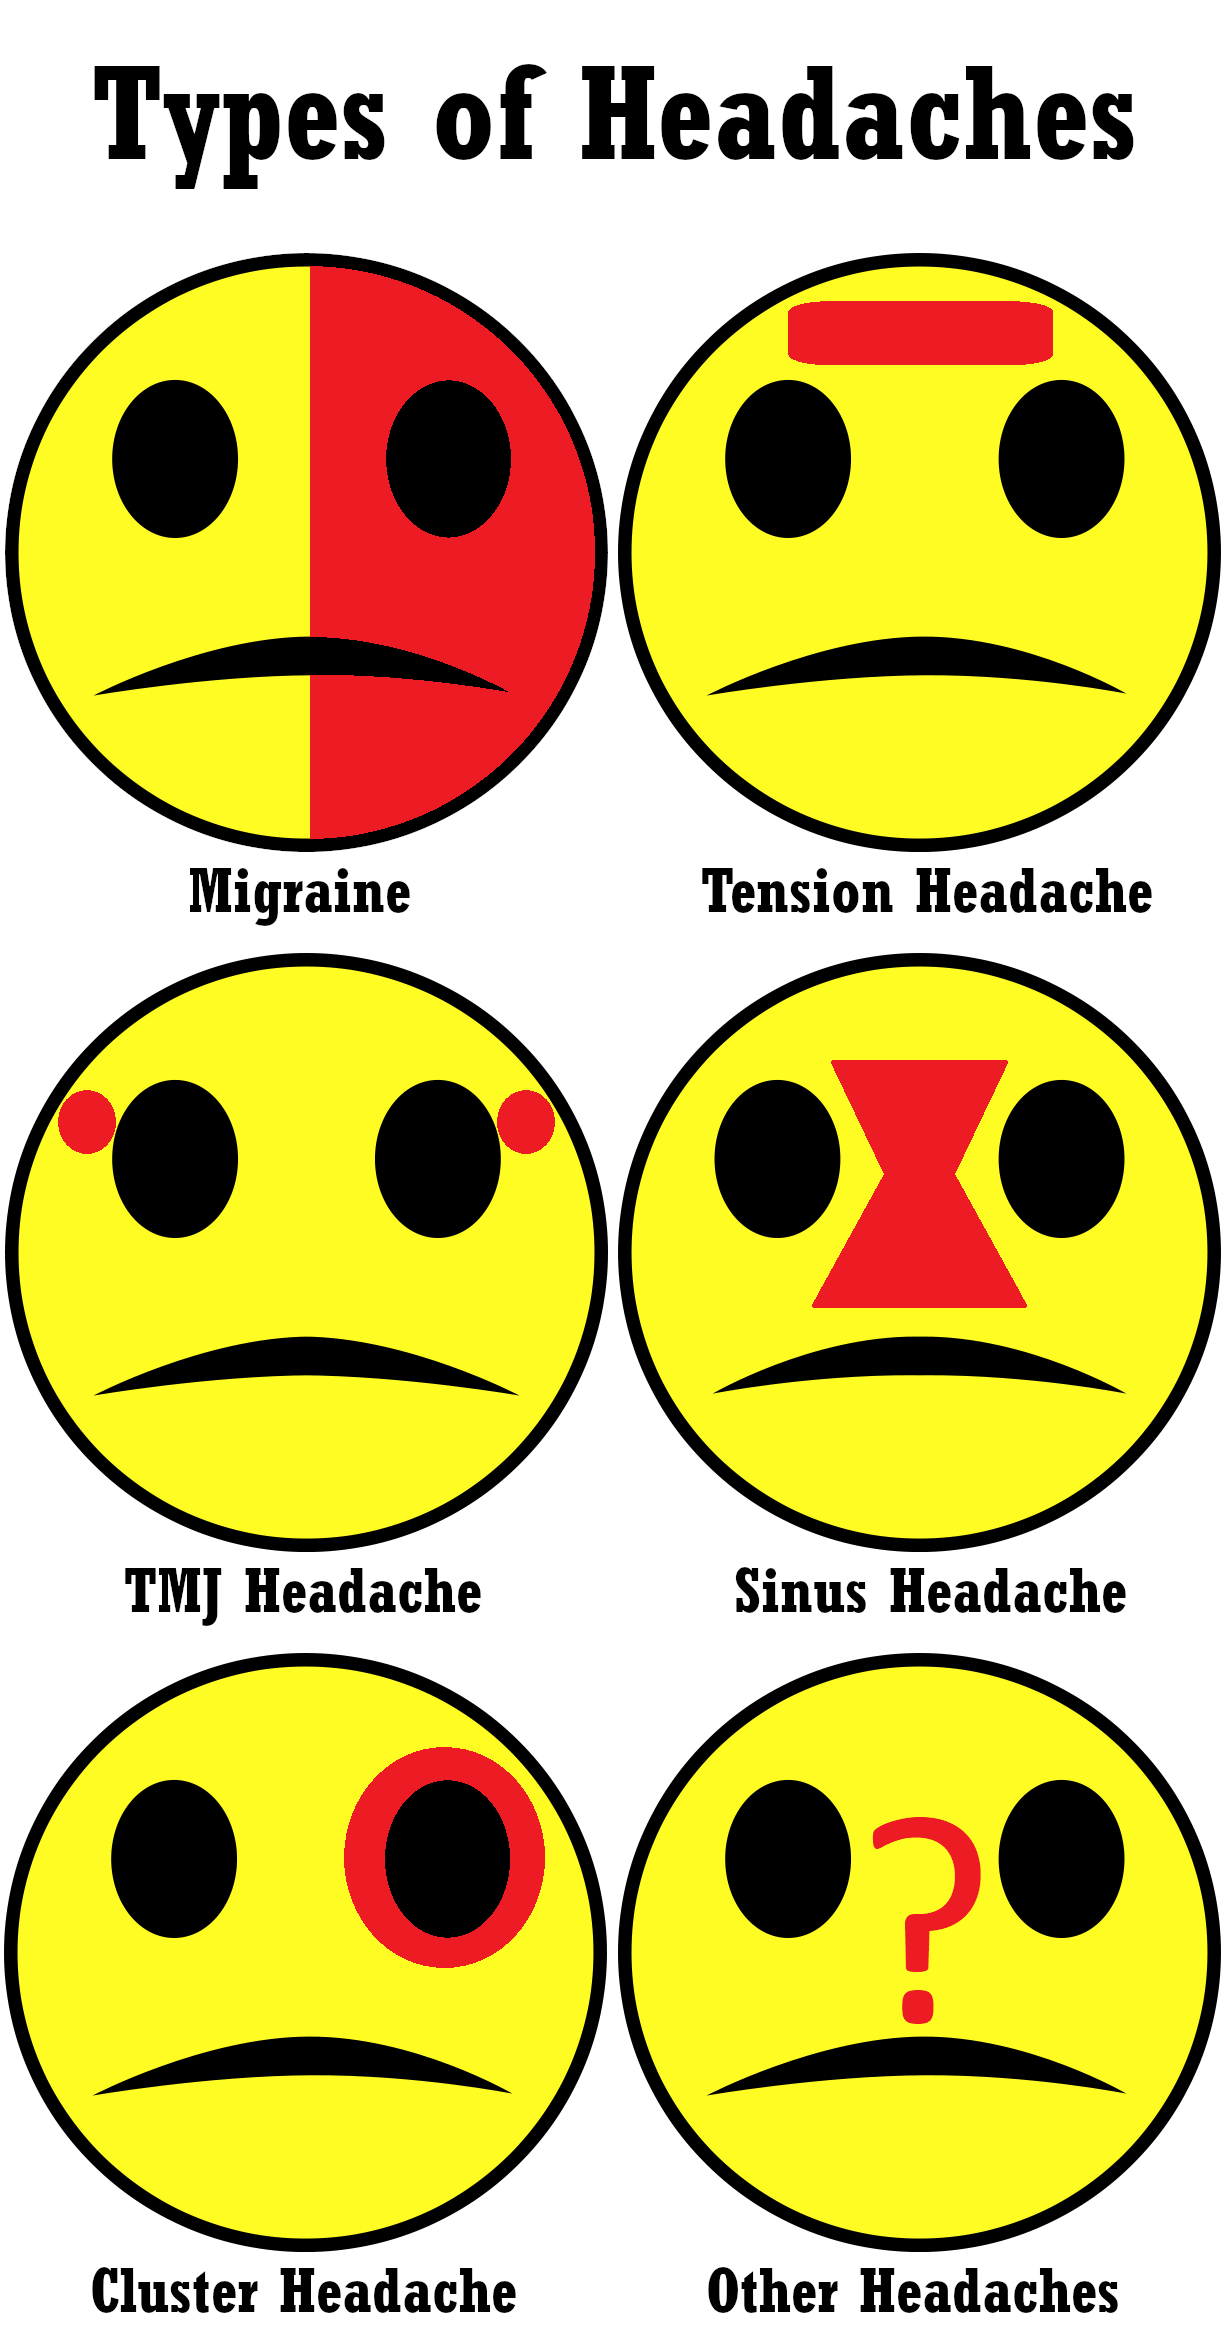 types of headaches chart: migraine, tension headache, tmj headache, sinus headache, cluster headache, other headaches